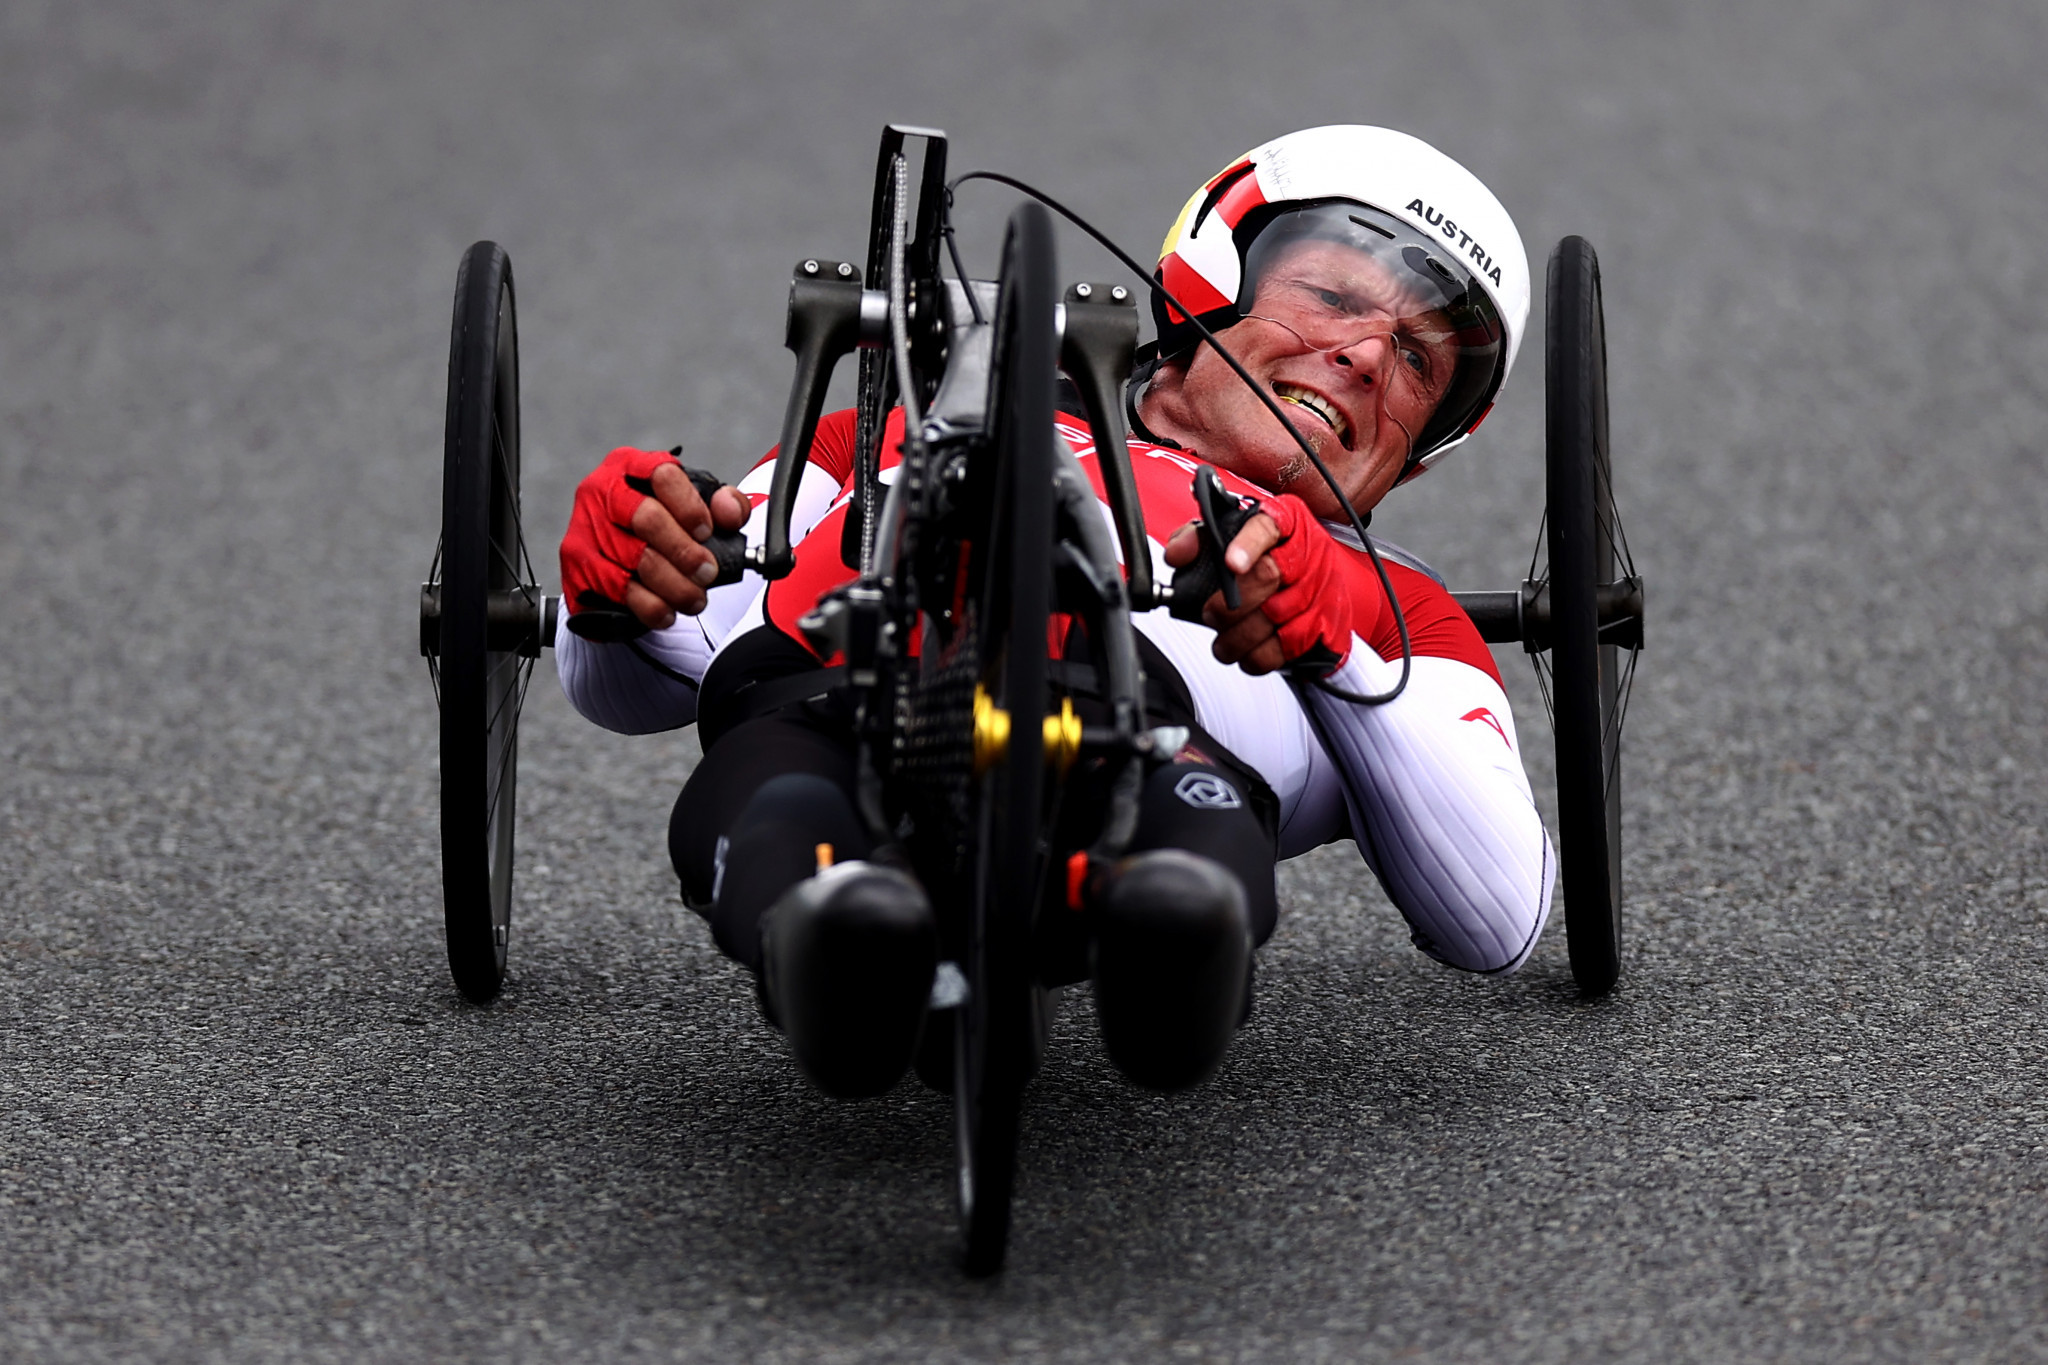 Para-cycling champion Ablinger in hospital after training accident